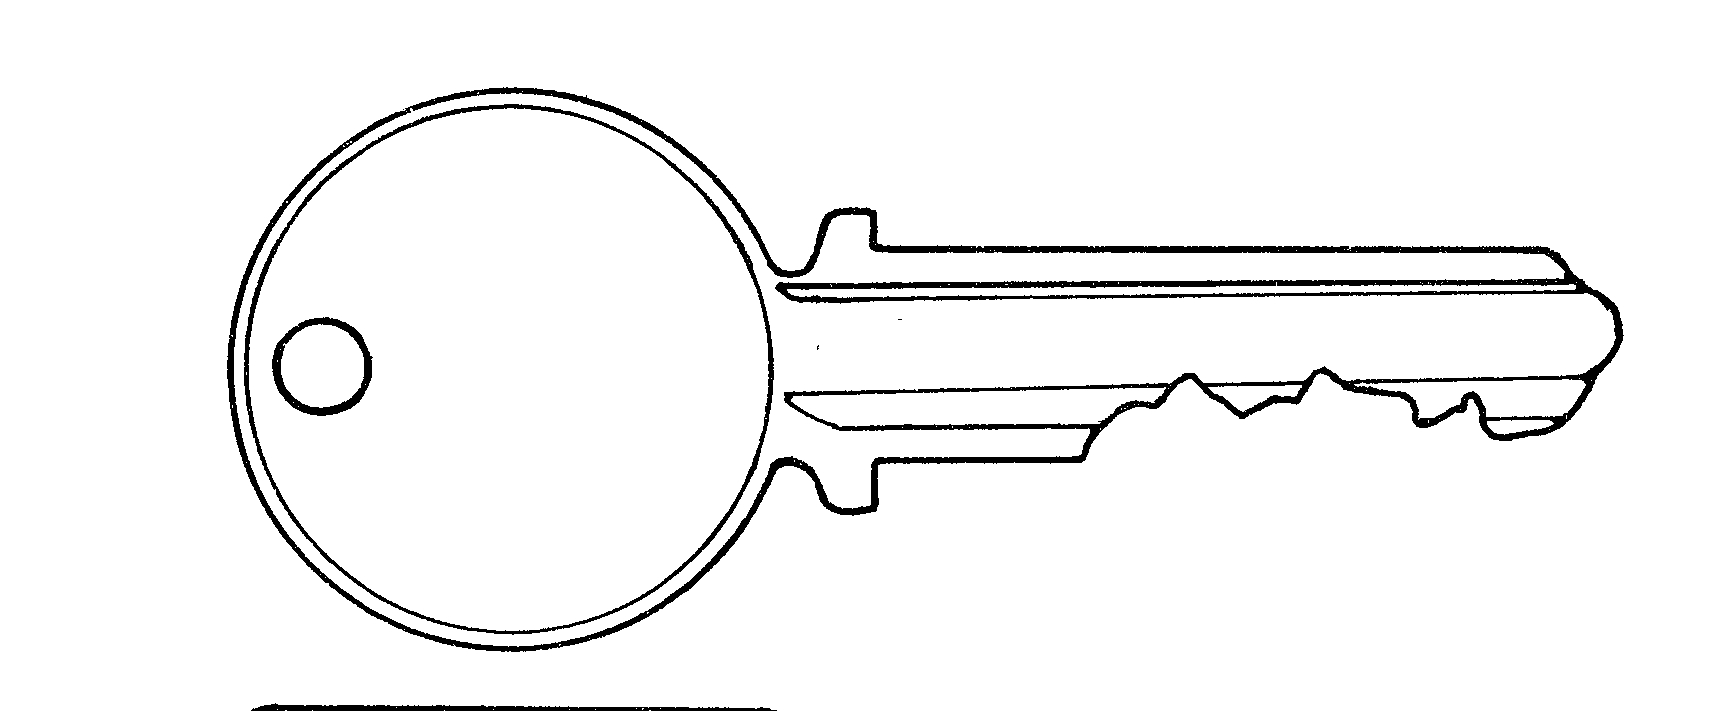 Key clipart black and white White Black and Key Clip